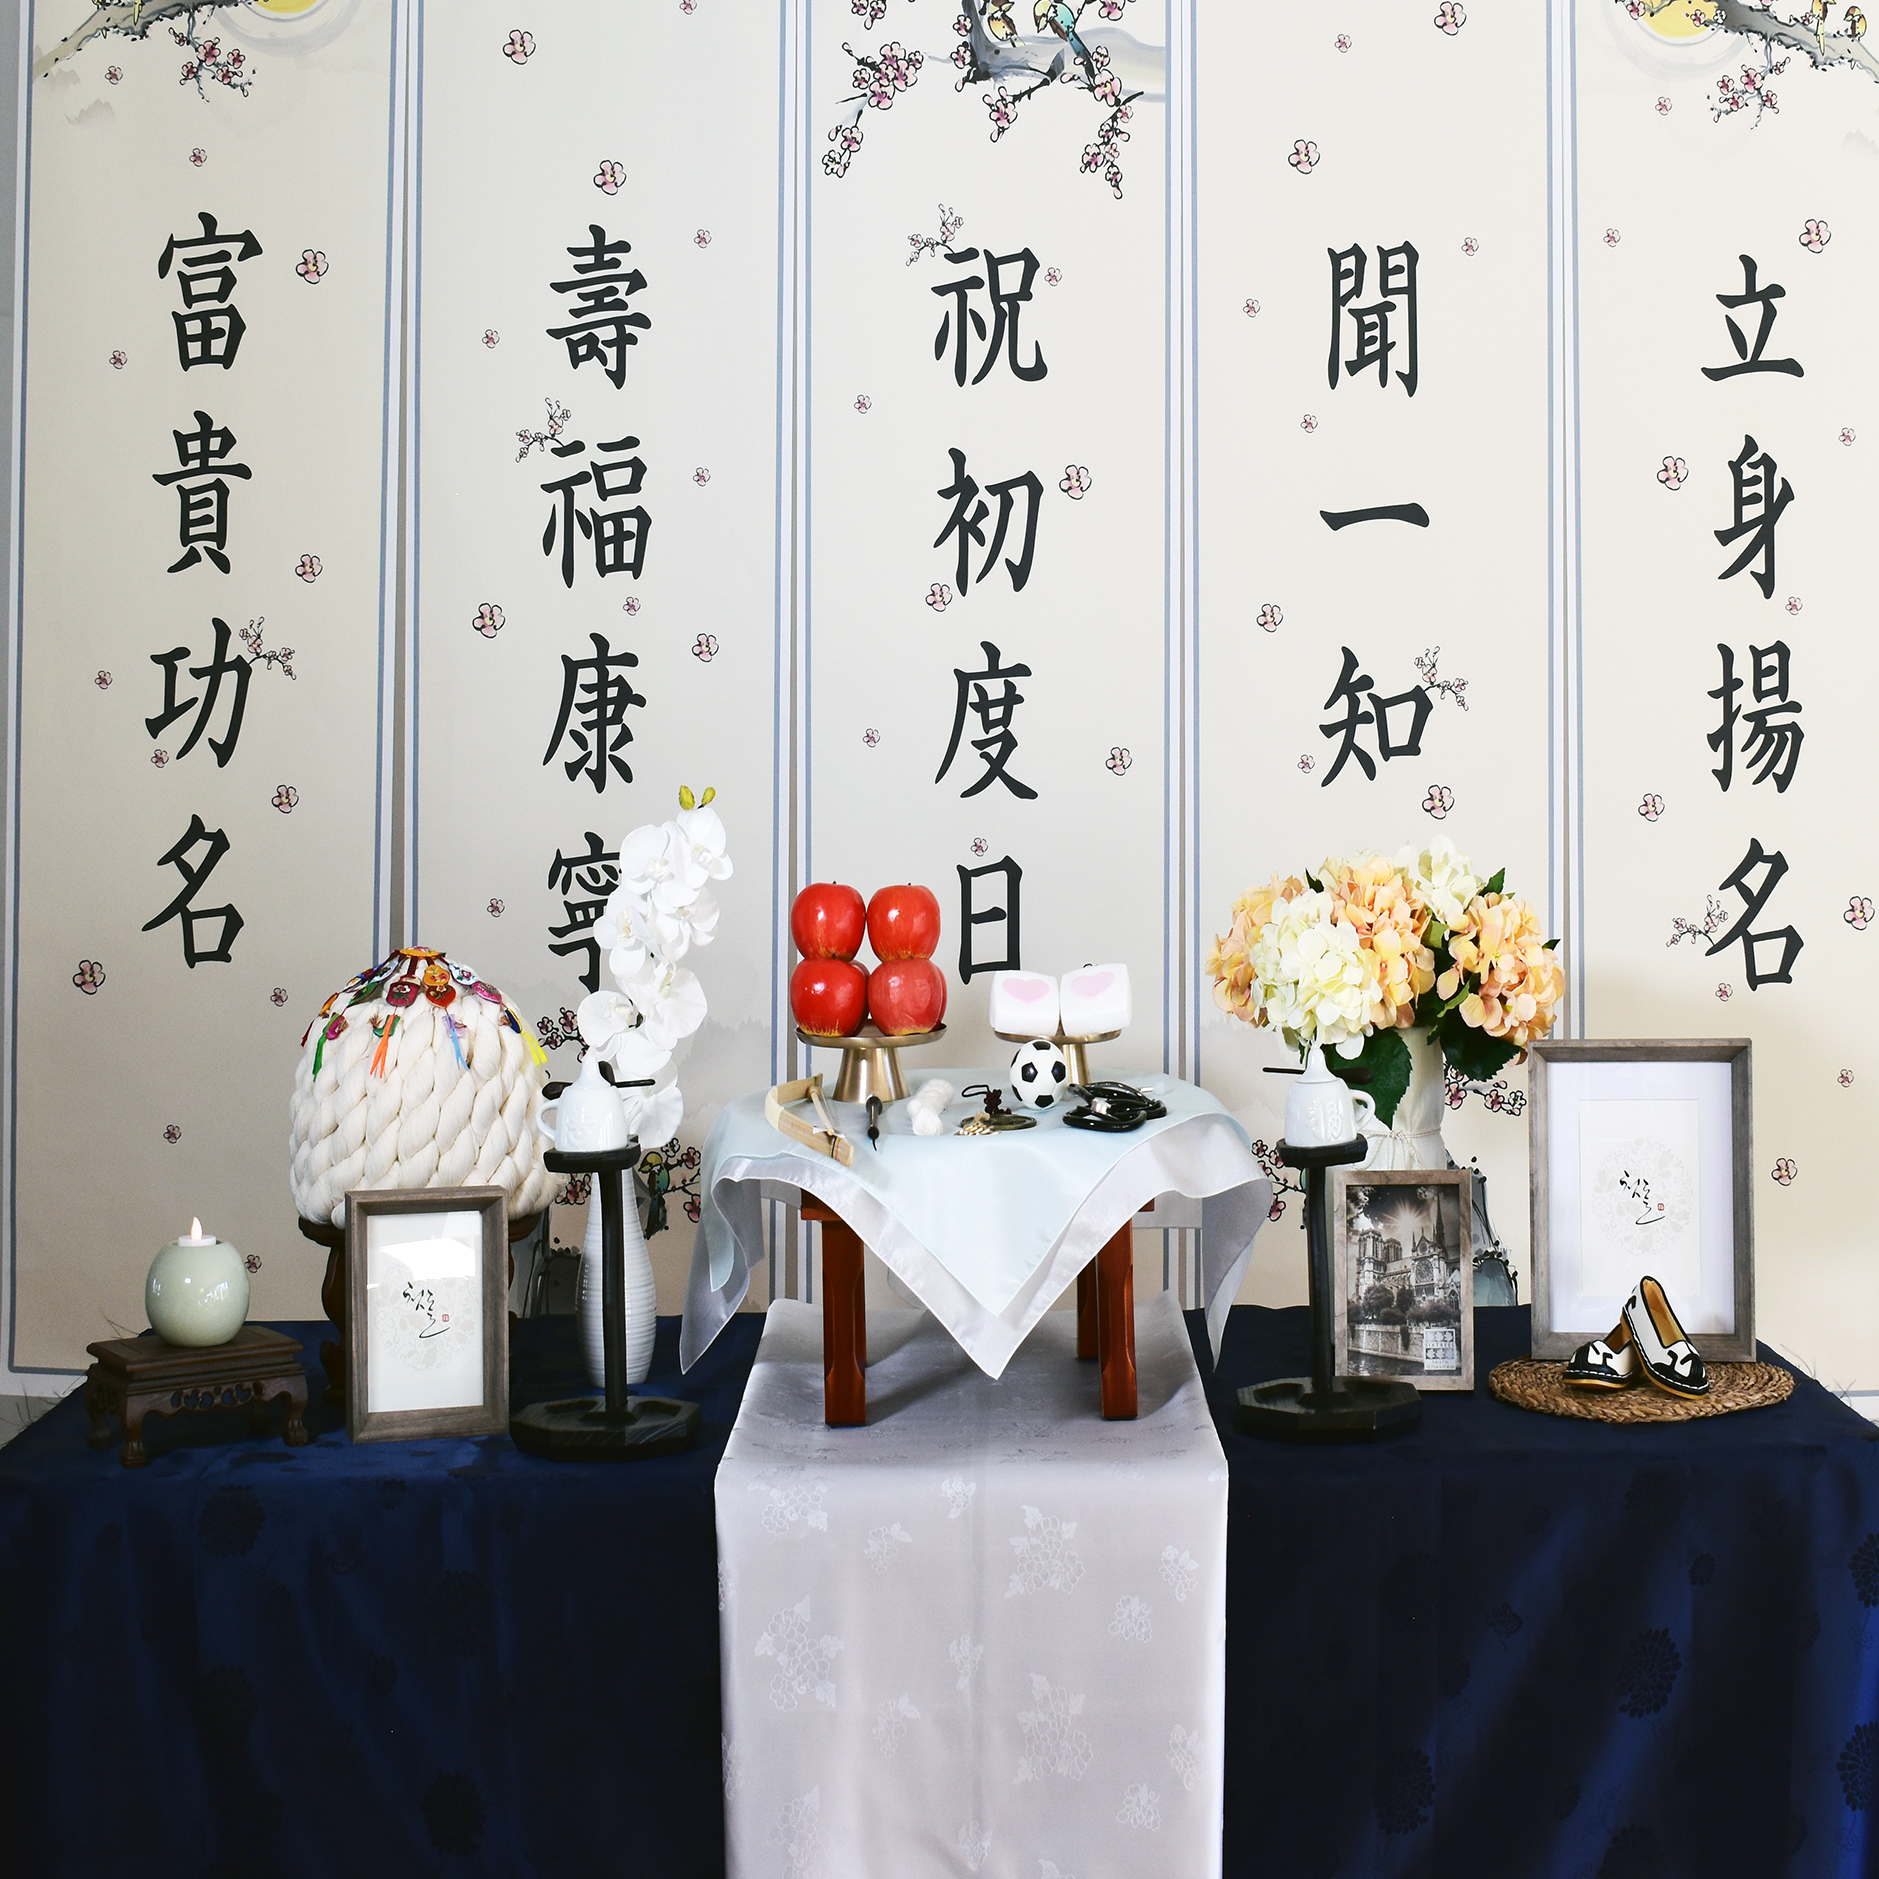 PETIT STYLE TABLE RENTAL: 축초도일 (The First Time-Navy) - Included: The First Time backdrop, round wooden table, traditional tablecloth, traditional runner, small tablecloth, 2 kerosene lamps, 1 mini wooden square table, traditional candle holder, display apples, rice cakes, silk flowers and plastic vases, shil ta rae, traditional accessories are randomly picked, 3 picture frame (5x7), Doljabi Items (Pick 5 items- Ma-pae, coin, stethoscope, writing brush, soccer ball, thread, bow and arrow)** Mix &Match backdrops and runners (choose from traditional table)*** Pick up- Everything included in the picture except display rice cakes, display fruits, brass plates.* Out of state - mini wooden table, display rice cakes, apples are not included. (optional) Will change to 2 small picture frames. All accessories are randomly picked.* Shipping fee will apply. Fees might vary depending on location.상품구성: 현수막, 상 1개, 고급 한복 원단 테이블보, 한복 원단 러너,상보, 호롱불 촛대 2개, 호롱불 2개,전통 사각 소반 1개, 전통 촛대 1개, 모형 사과, 백설기, 꽃과 아크릴 화병 2개, 상화, 실타래, 전통 장식품들 램덤, 액자 3개 (5x7), 돌잡이 용품(5개 선택 - 활, 실, 엽전,붓, 마패, 축구공, 청진기),** Traditional Table 에서 현수막, 러너 Mix & Match 하실수 있습니다.*** Pick up- 사진에 모든 물품 포함되지만 모형떡, 과일, 유기그릇은 포함되지 않습니다. 전통 소품들은 랜덤입니다.* 타주시 - 깨지지 않는 소품들로 나갑니다. 작은 액자 2개로 변경, 유기그릇, 개다리 소반은 포함되지 않으며, 모형 과일, 떡은 옵션입니다. 전통 장식품들은 랜덤입니다.*배송시 배송비는 추가이며, 지역따라 배송비가 다를수 있습니다.